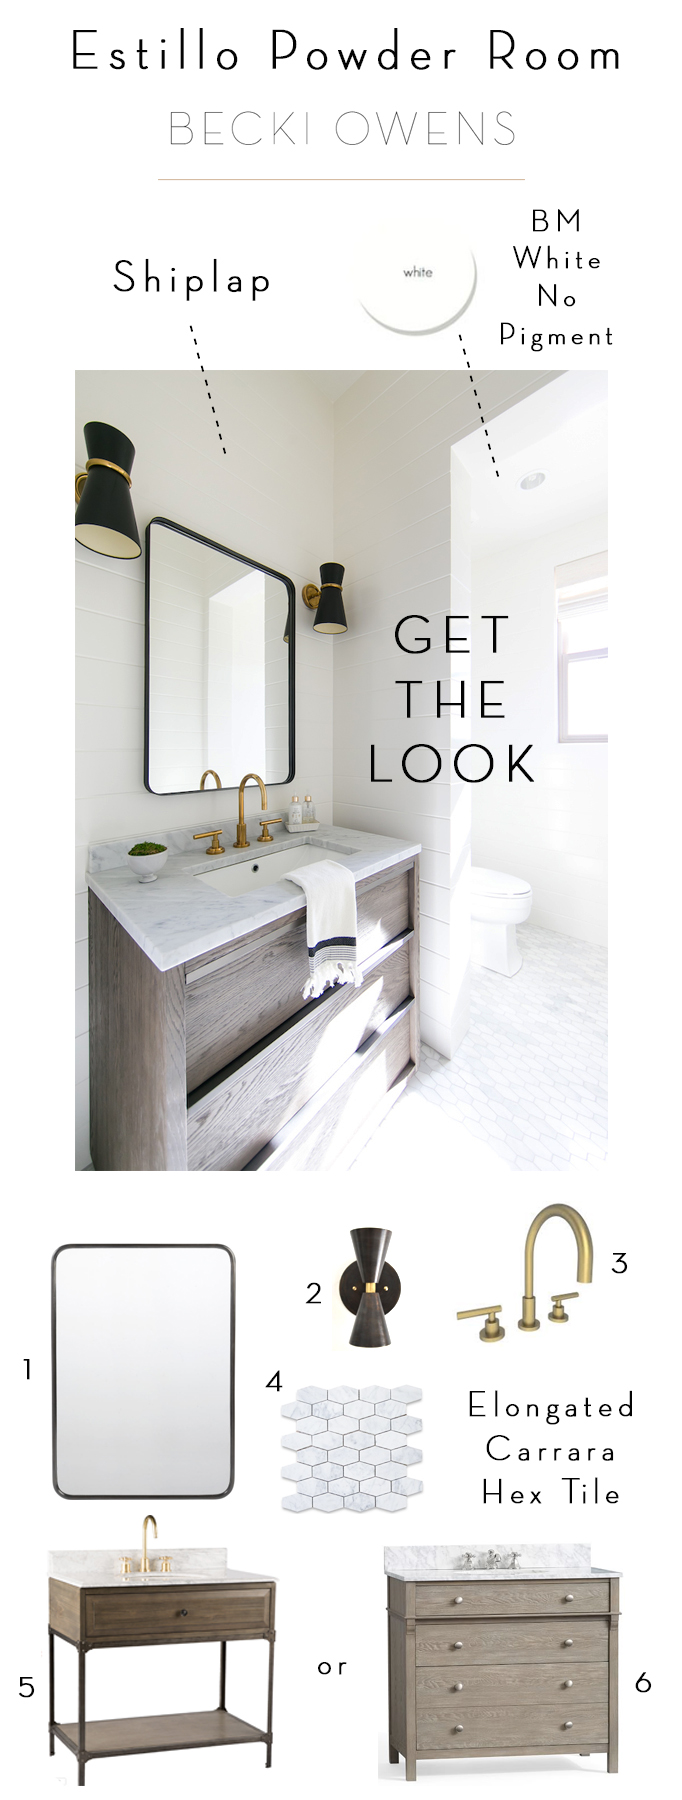 becki owens estillow powder room